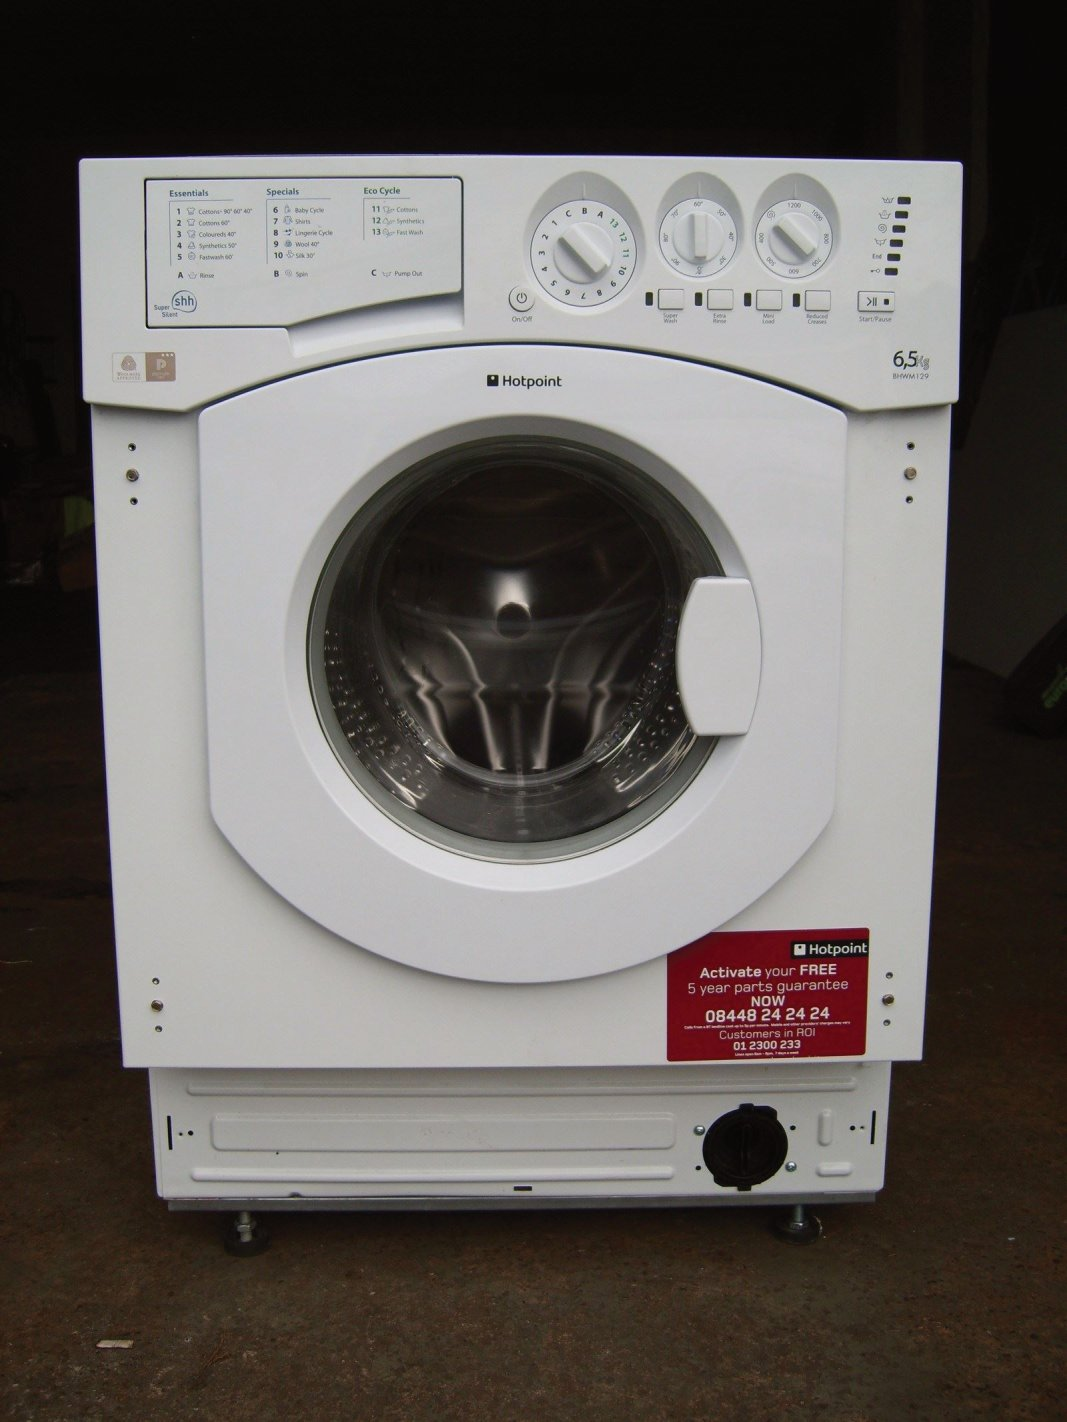 dawesdomestics.co.uk HOTPOINT BHWM 129,  £225